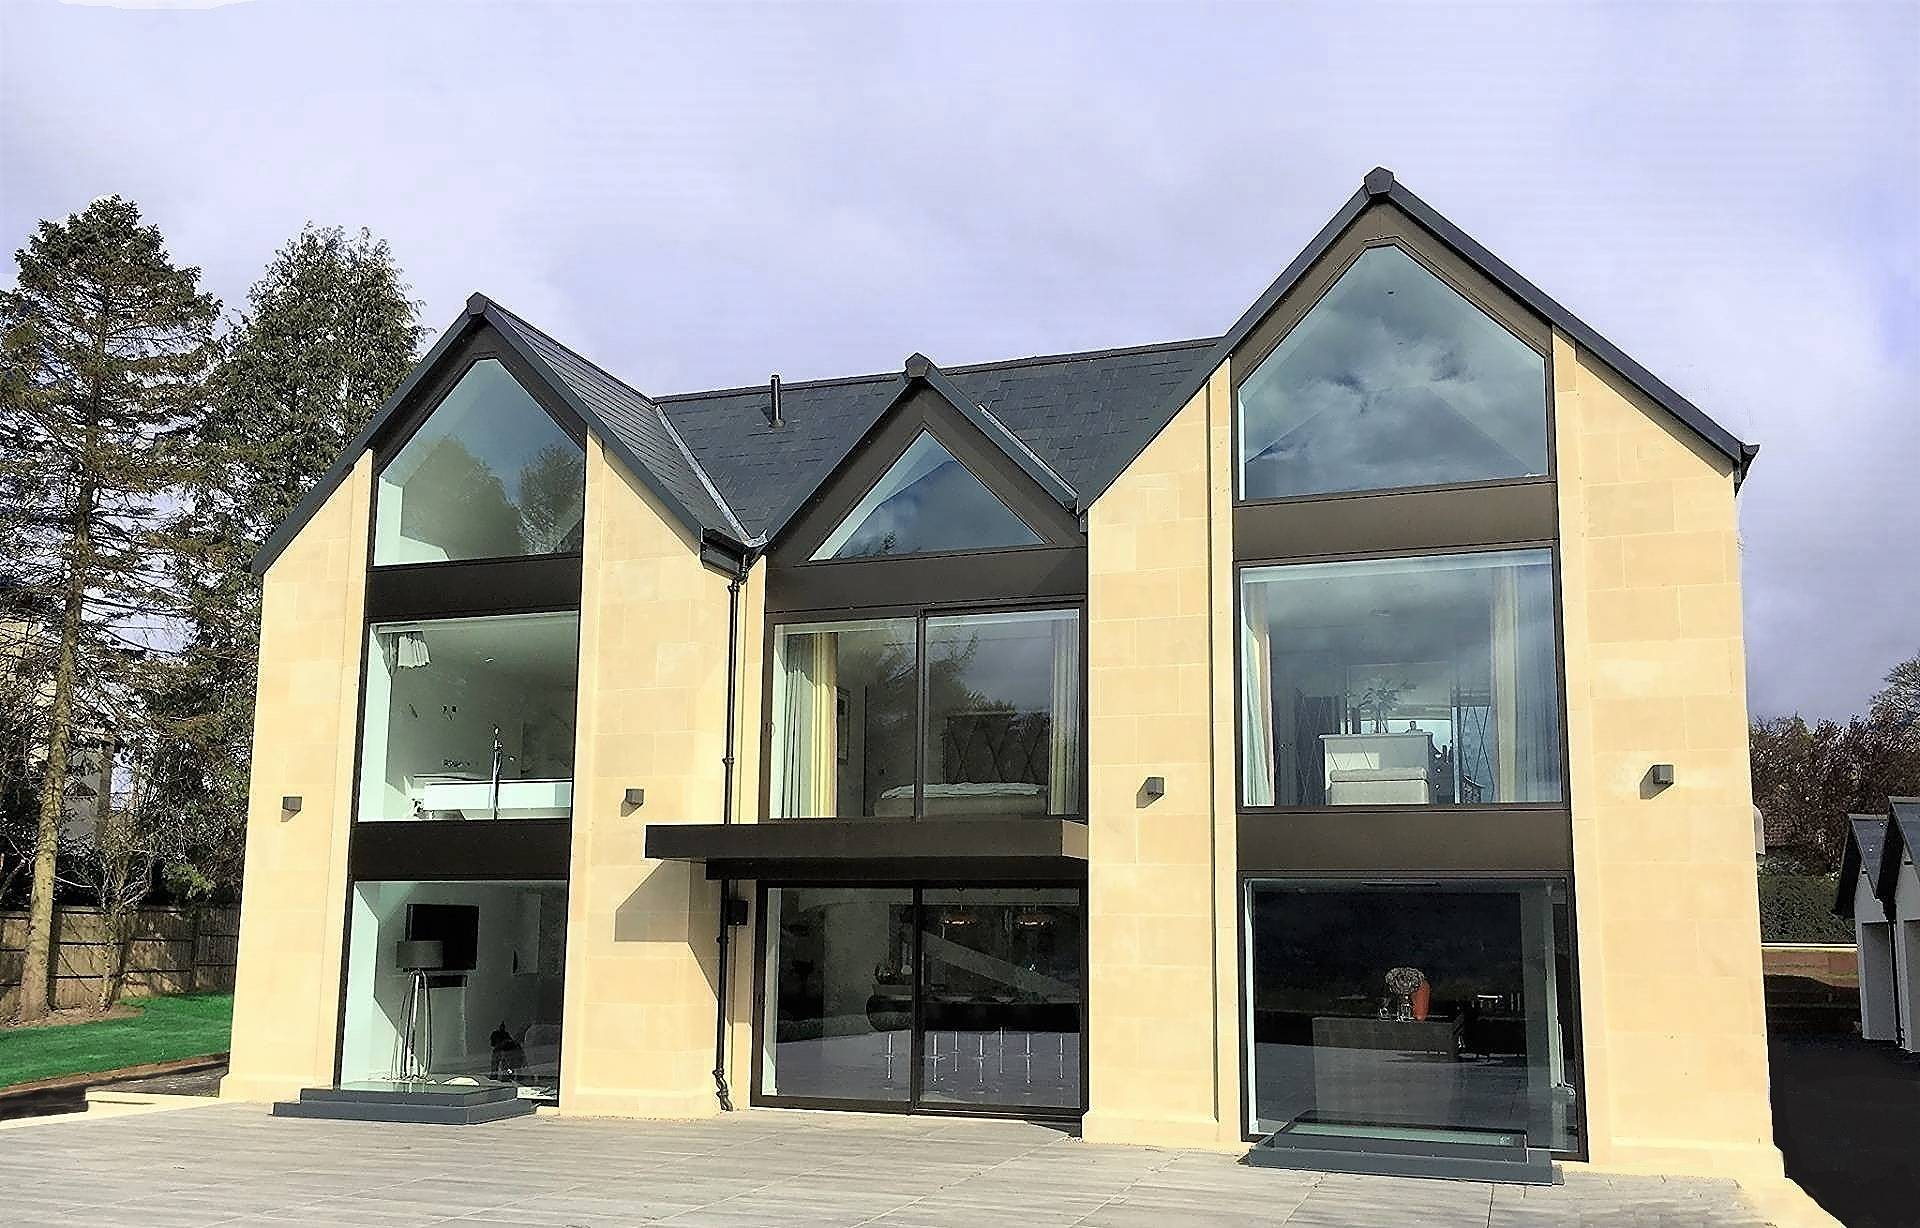 floor to ceiling feature windows installed in large 'grand design' style new build property near Ilkley in West Yorkshire